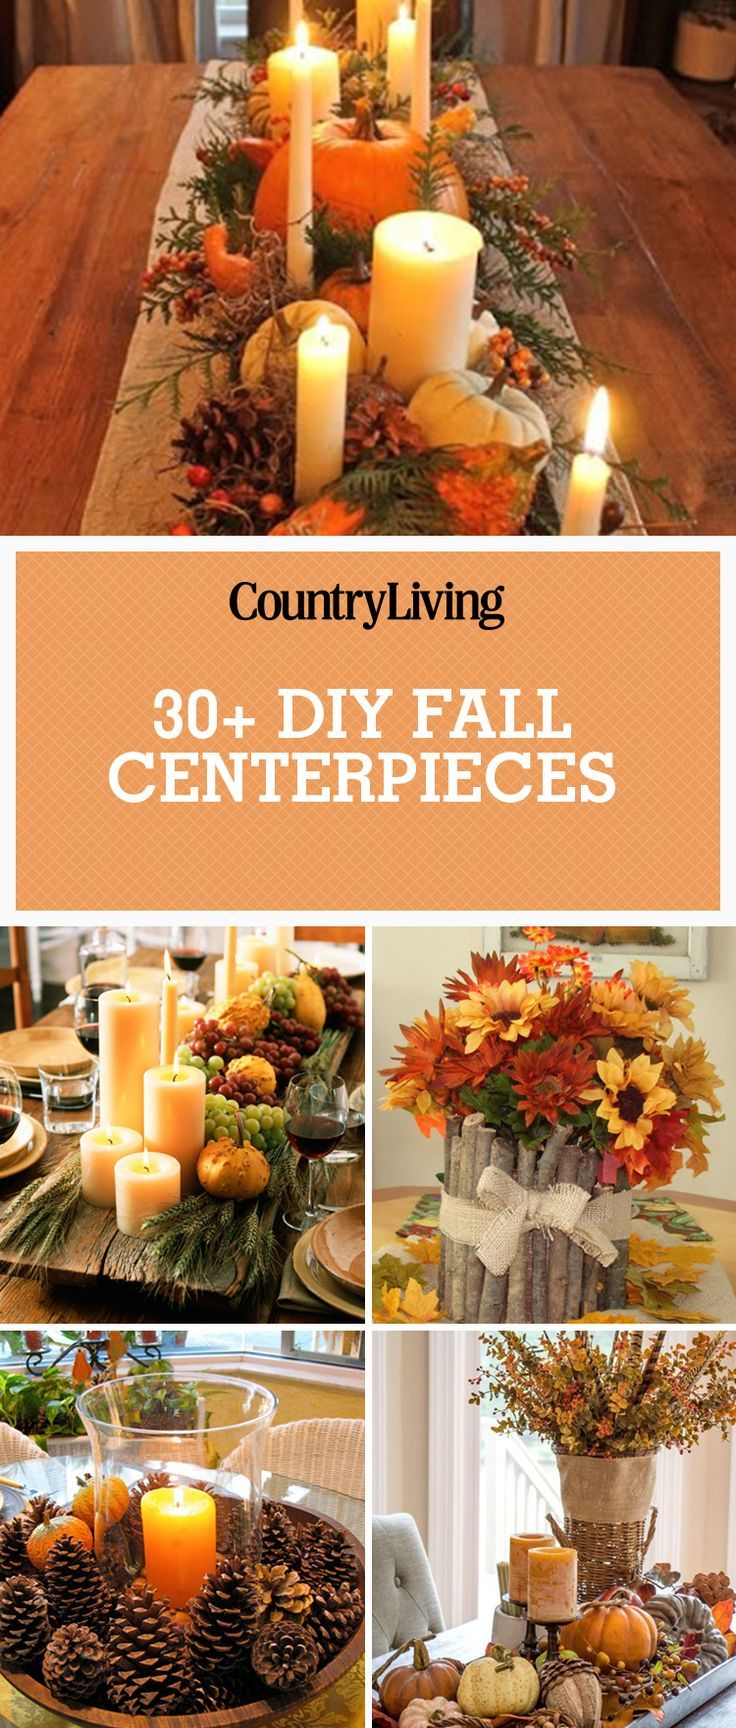 DIY Centerpieces for the Craftiest (and Cutest) Fall Yet